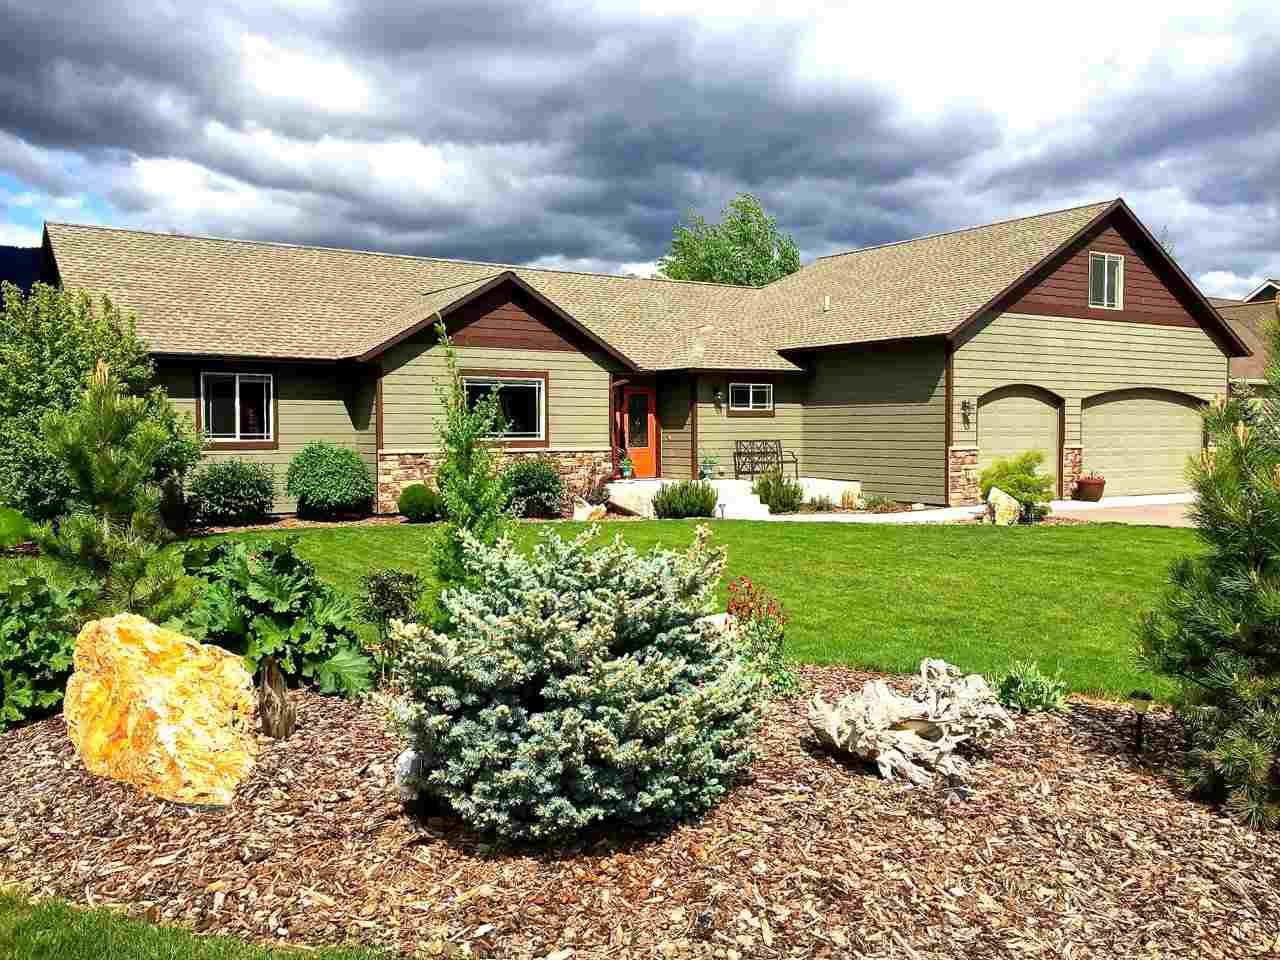 Real Estate for Sale, ListingId: 32053038, Frenchtown,MT59834